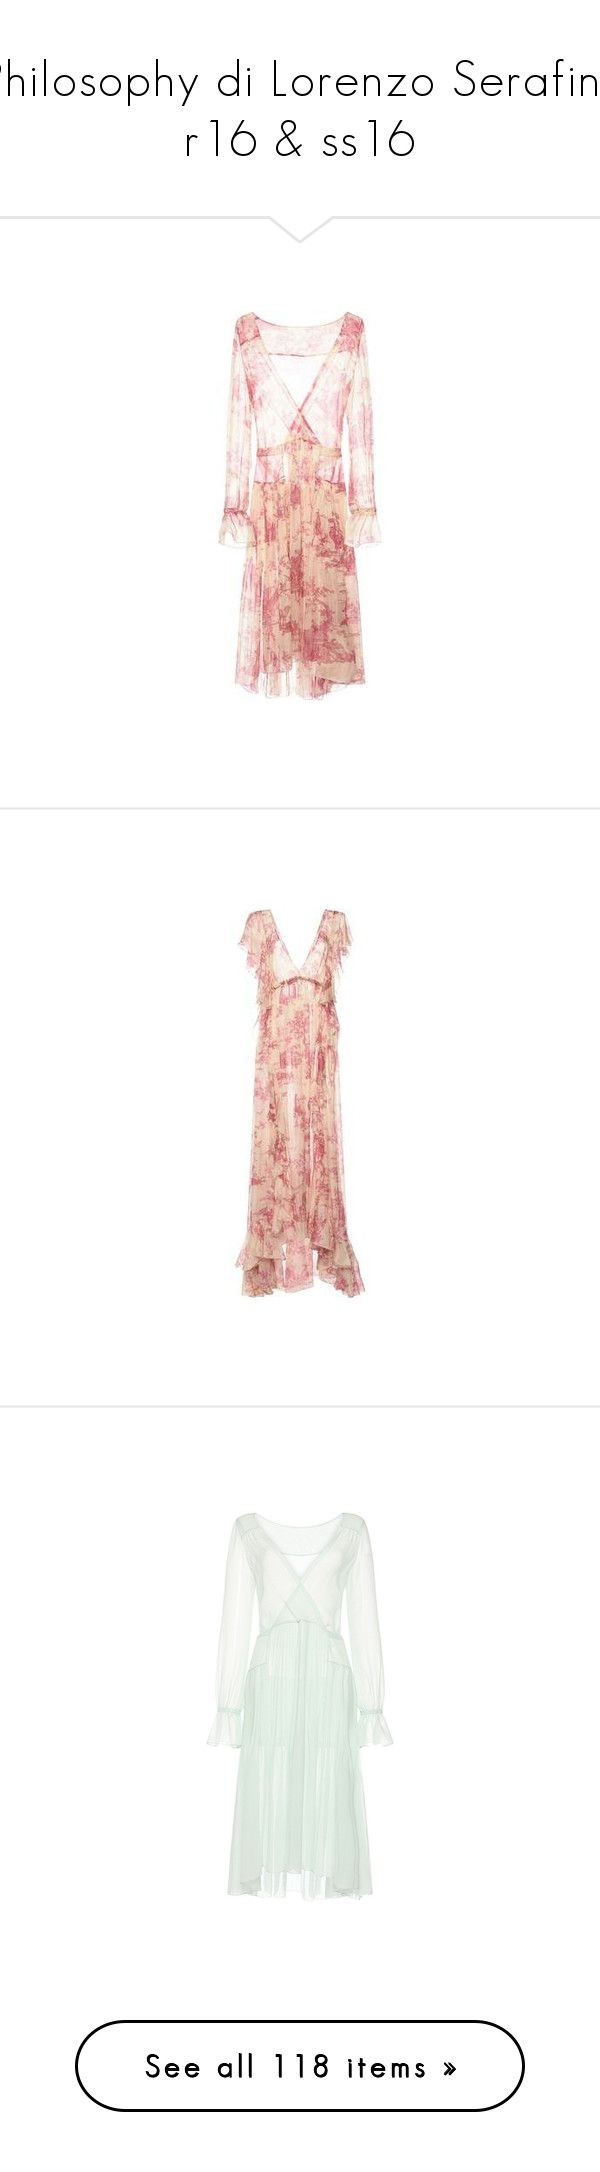 """""""Philosophy di Lorenzo Serafini: r16 & ss16"""" by livnd ❤ liked on Polyvore featuring collection, PhilosophydiLorenzoSerafini, Resort2016, springsummer2016, dresses, red summer dress, summer dresses, red dress, summer day dresses and open-back dresses"""